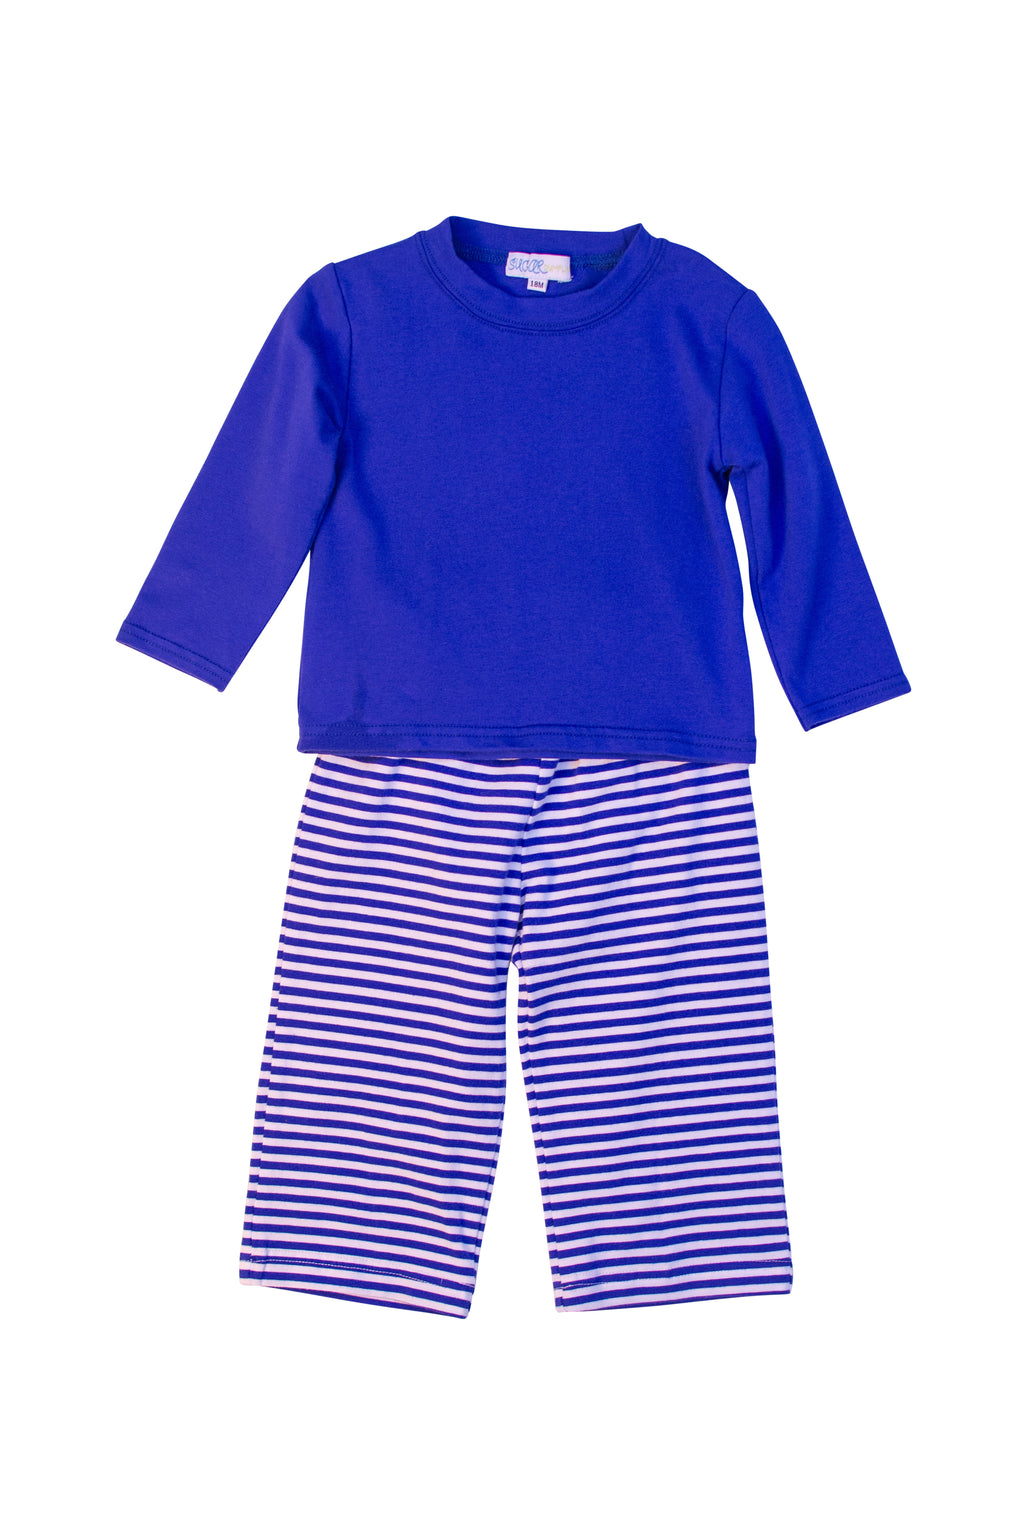 Boys Knit Dark Blue Stripe Pant Set